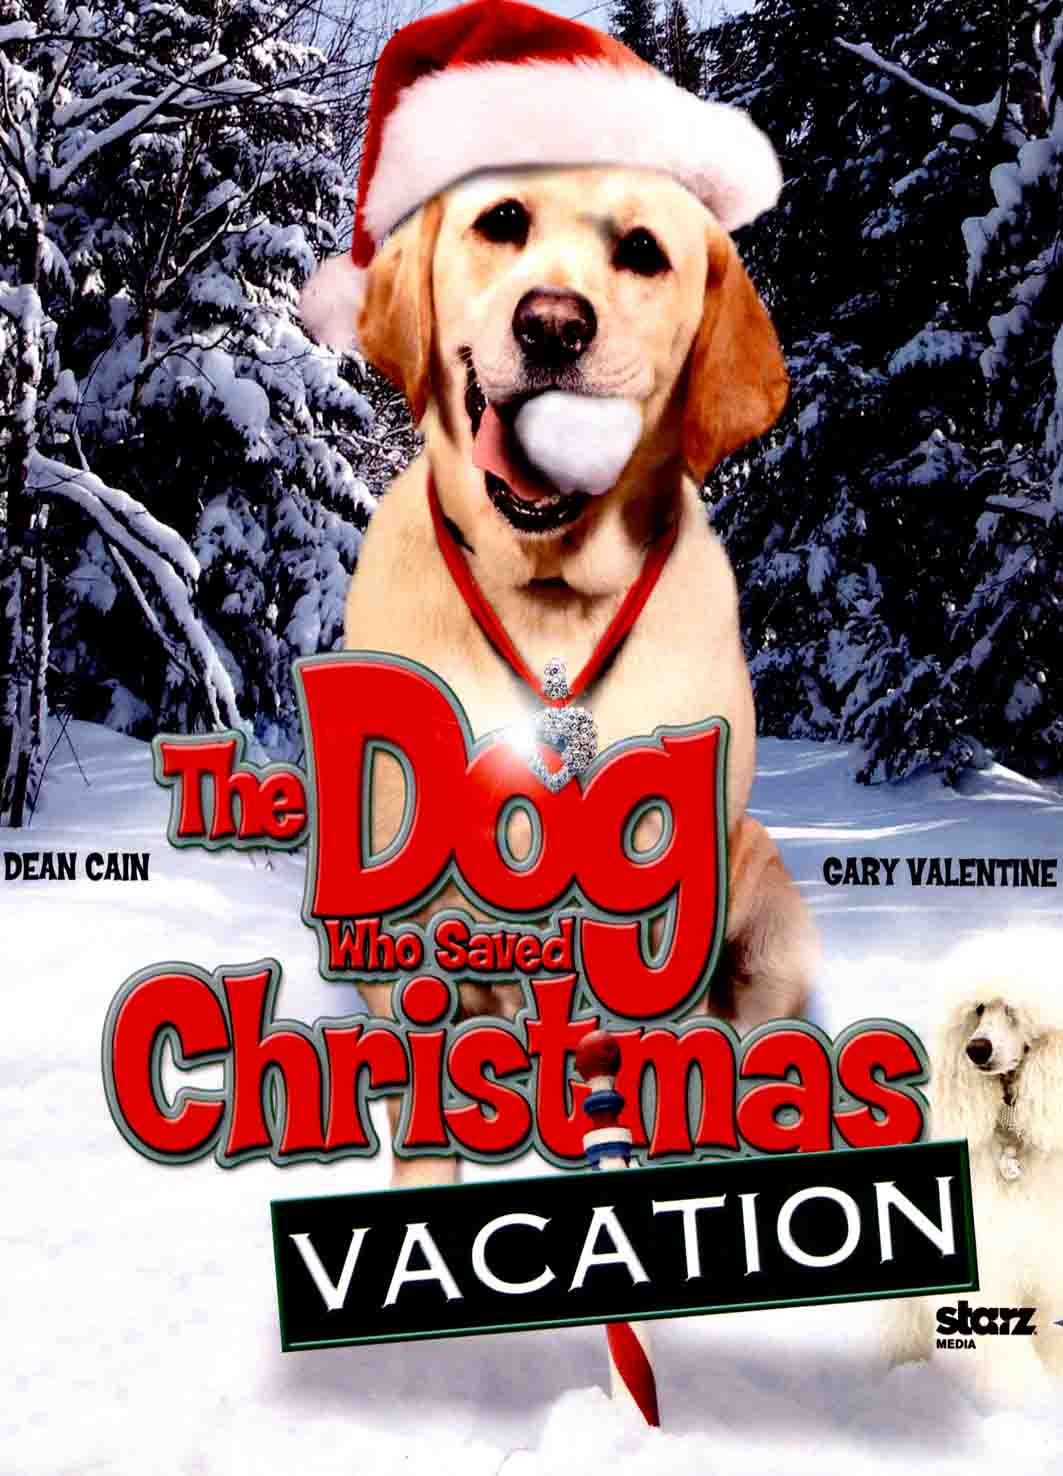 The Dog Who Saved Christmas' Vacation